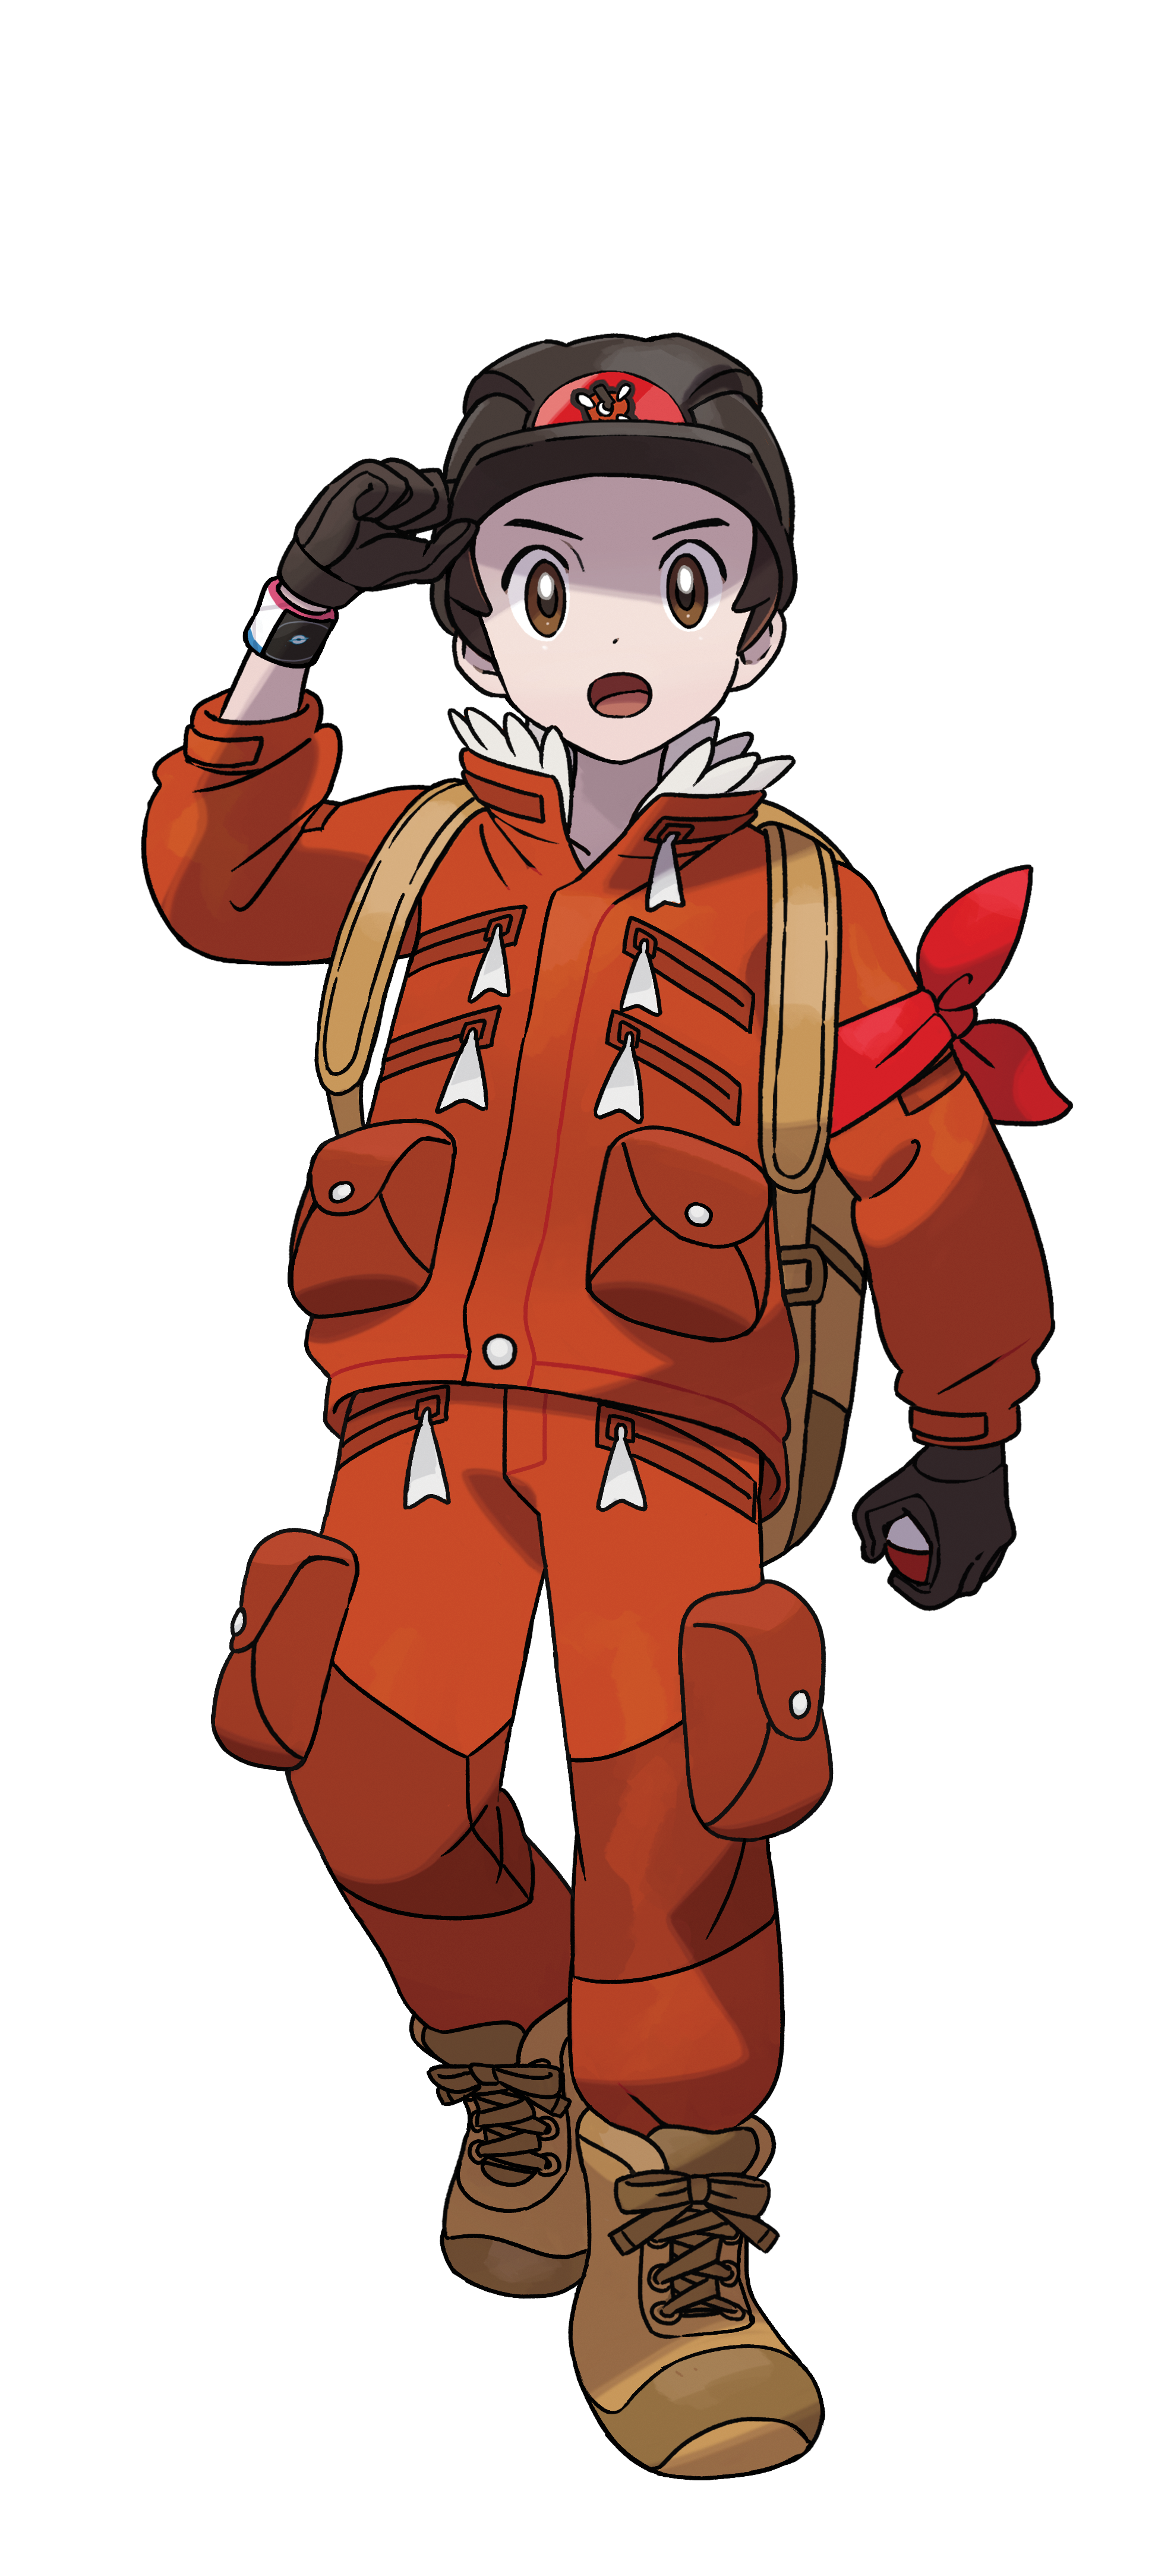 The Crown Tundra Boy Victor Render (Pokemon Sword and Shield).png